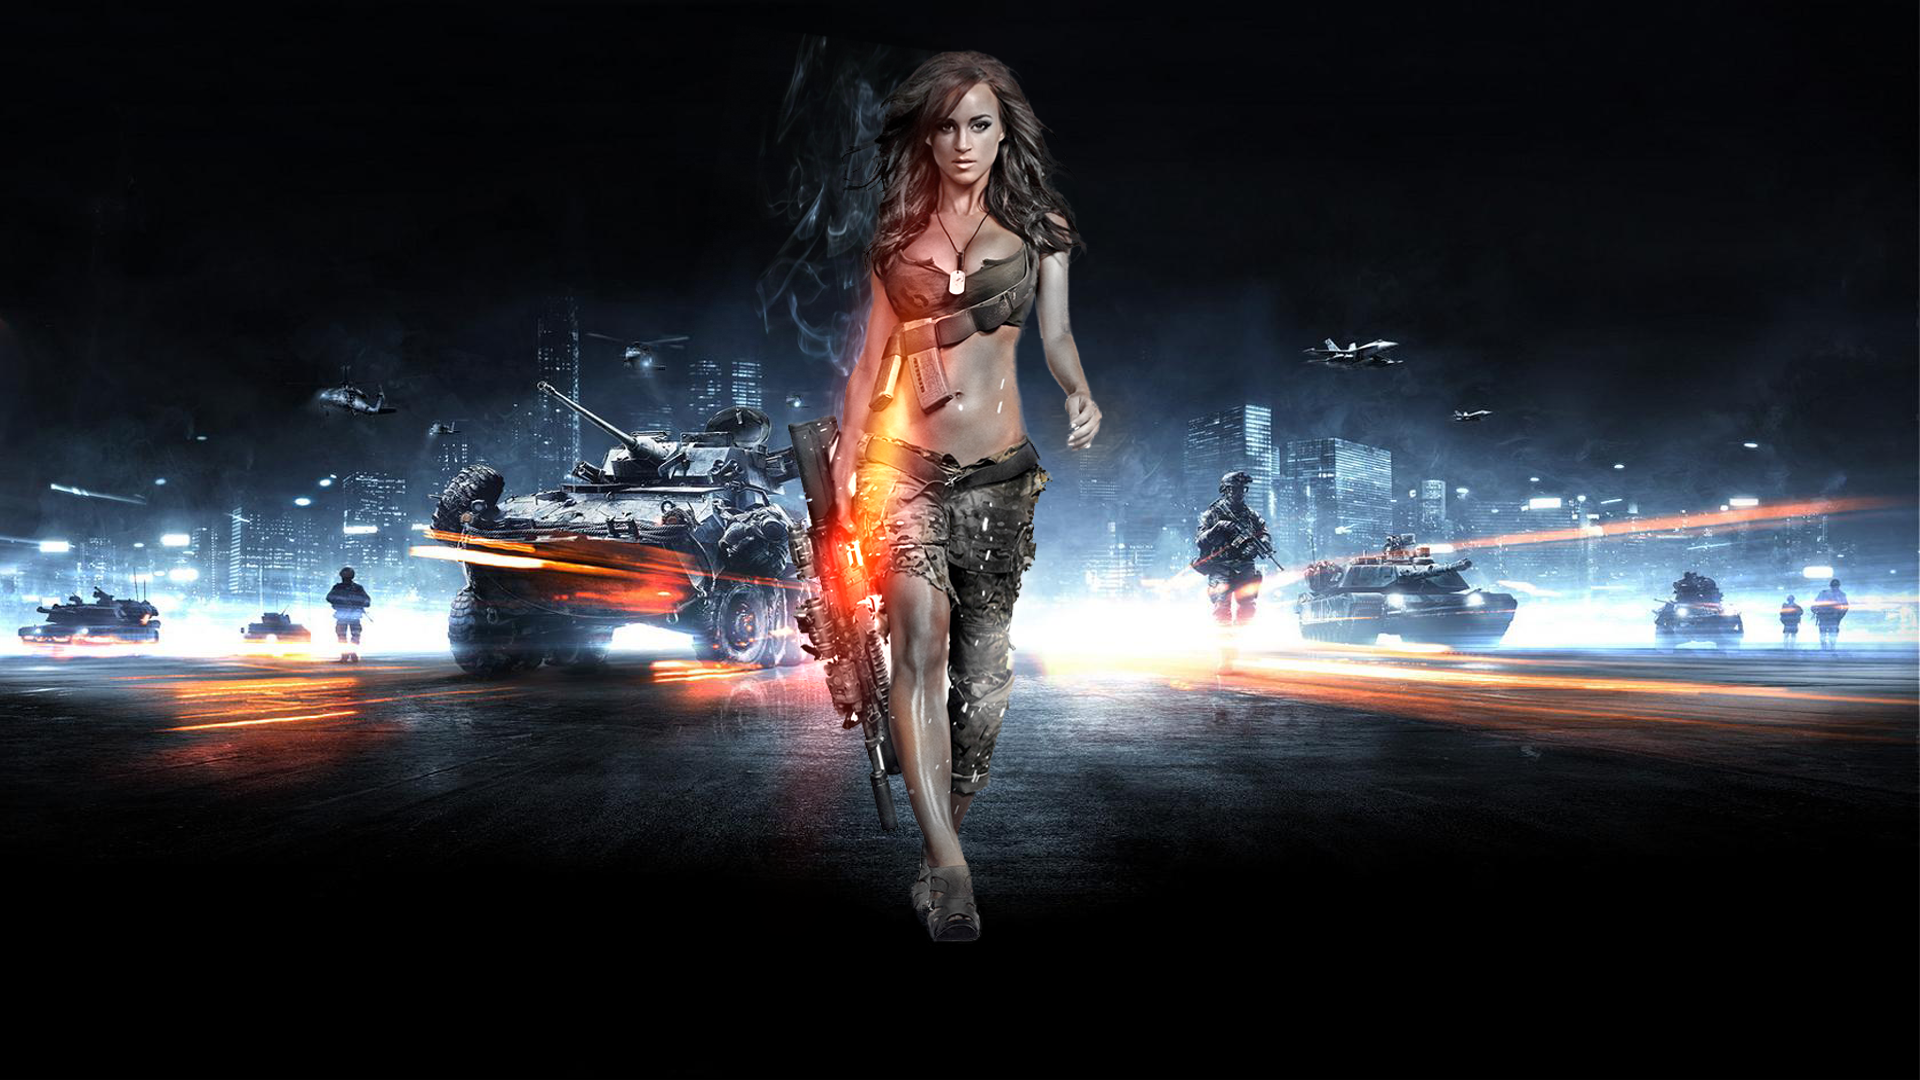 Sexy Battlefield 3 Wallpaper By K3nny94 Watch Fan Art Games